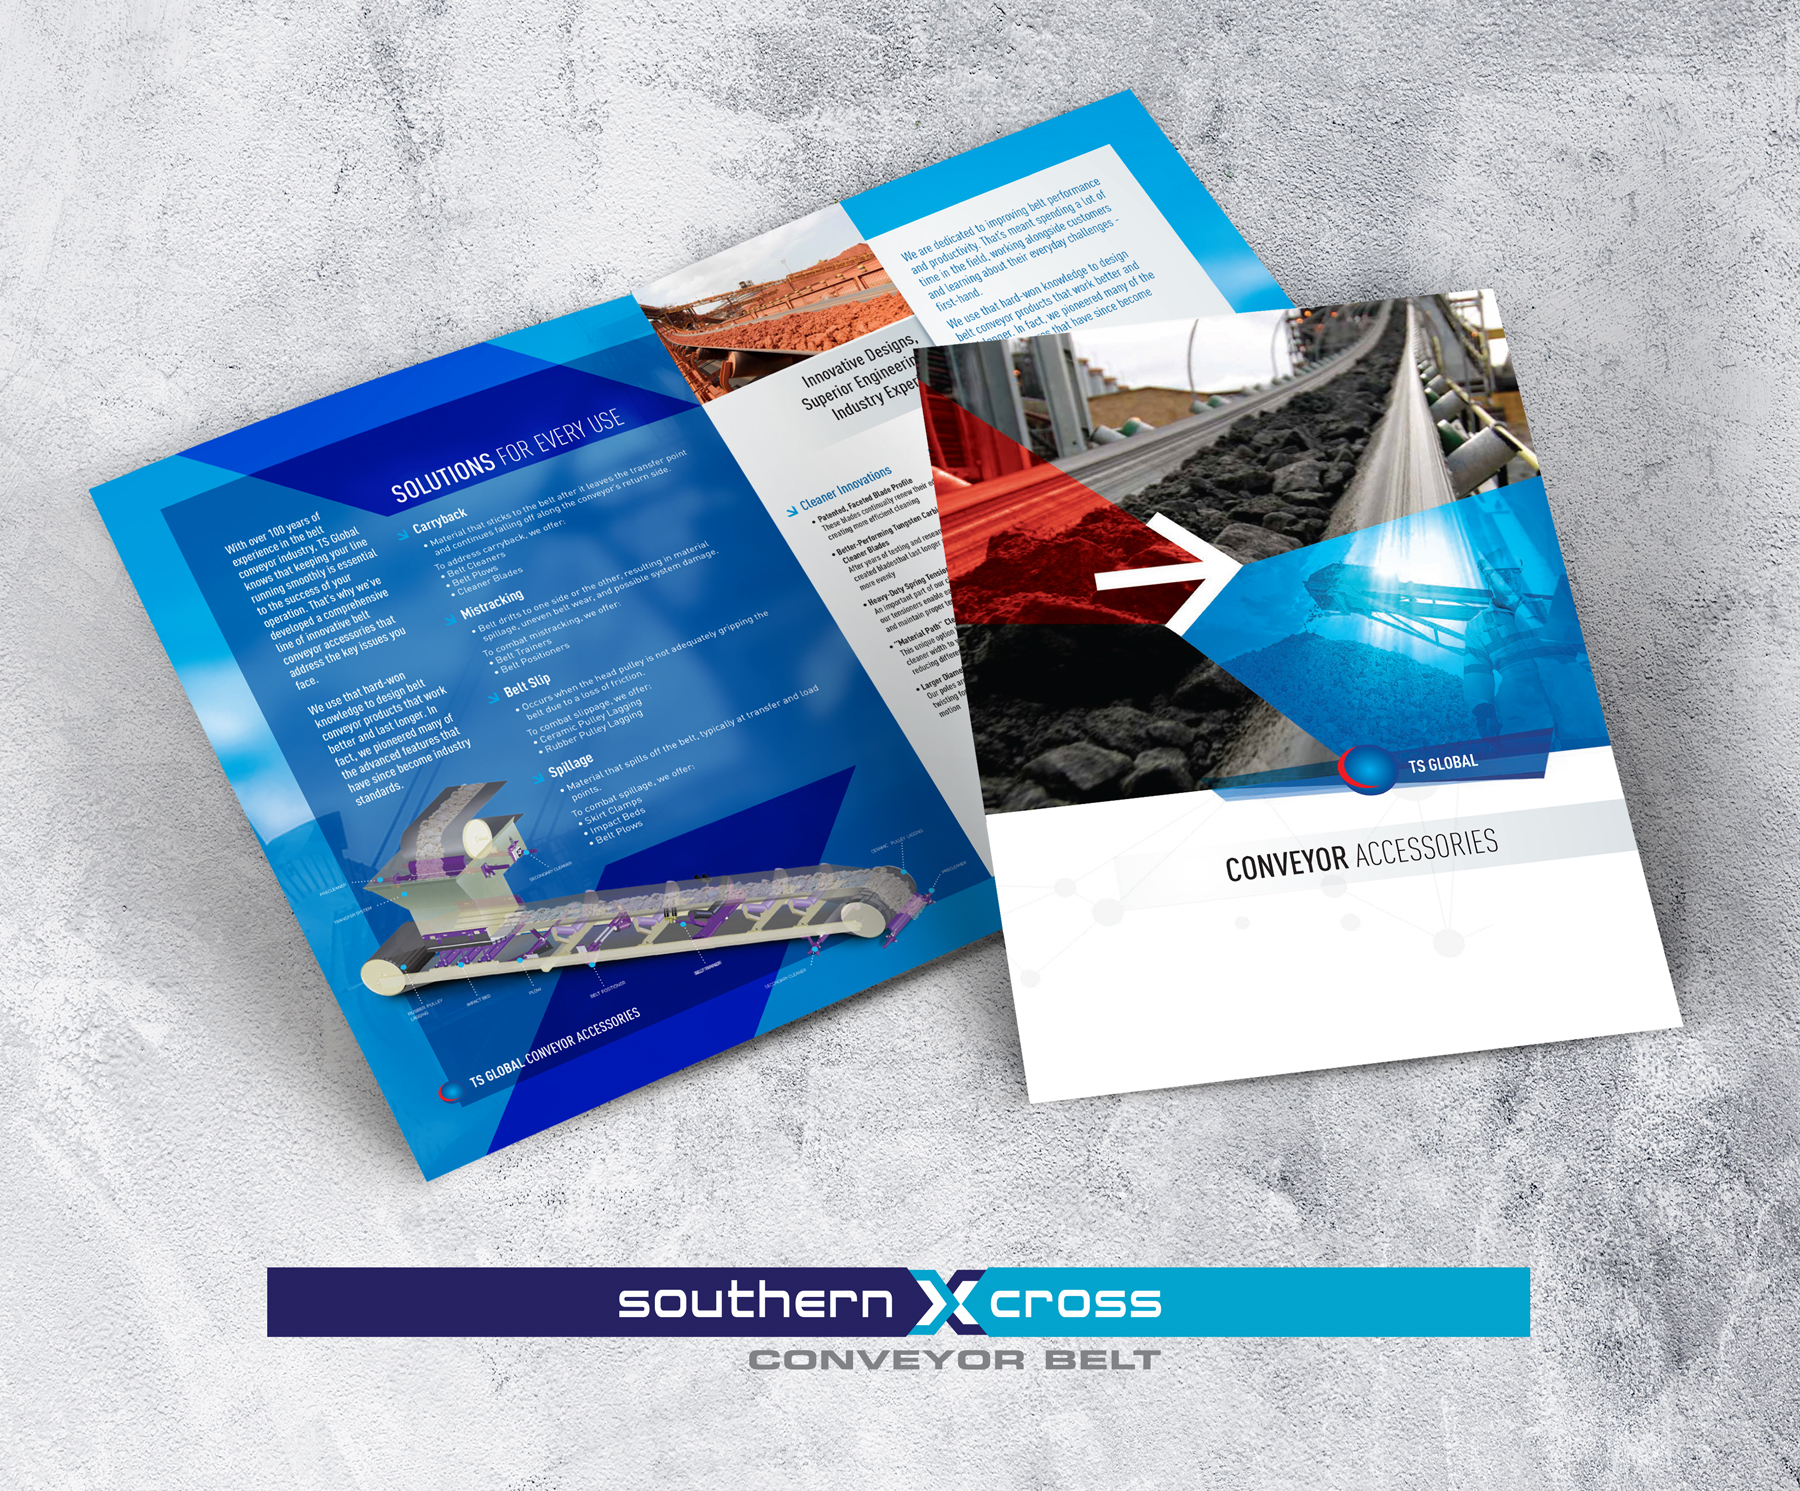 Convatec 12 page brochure display banner on grey background